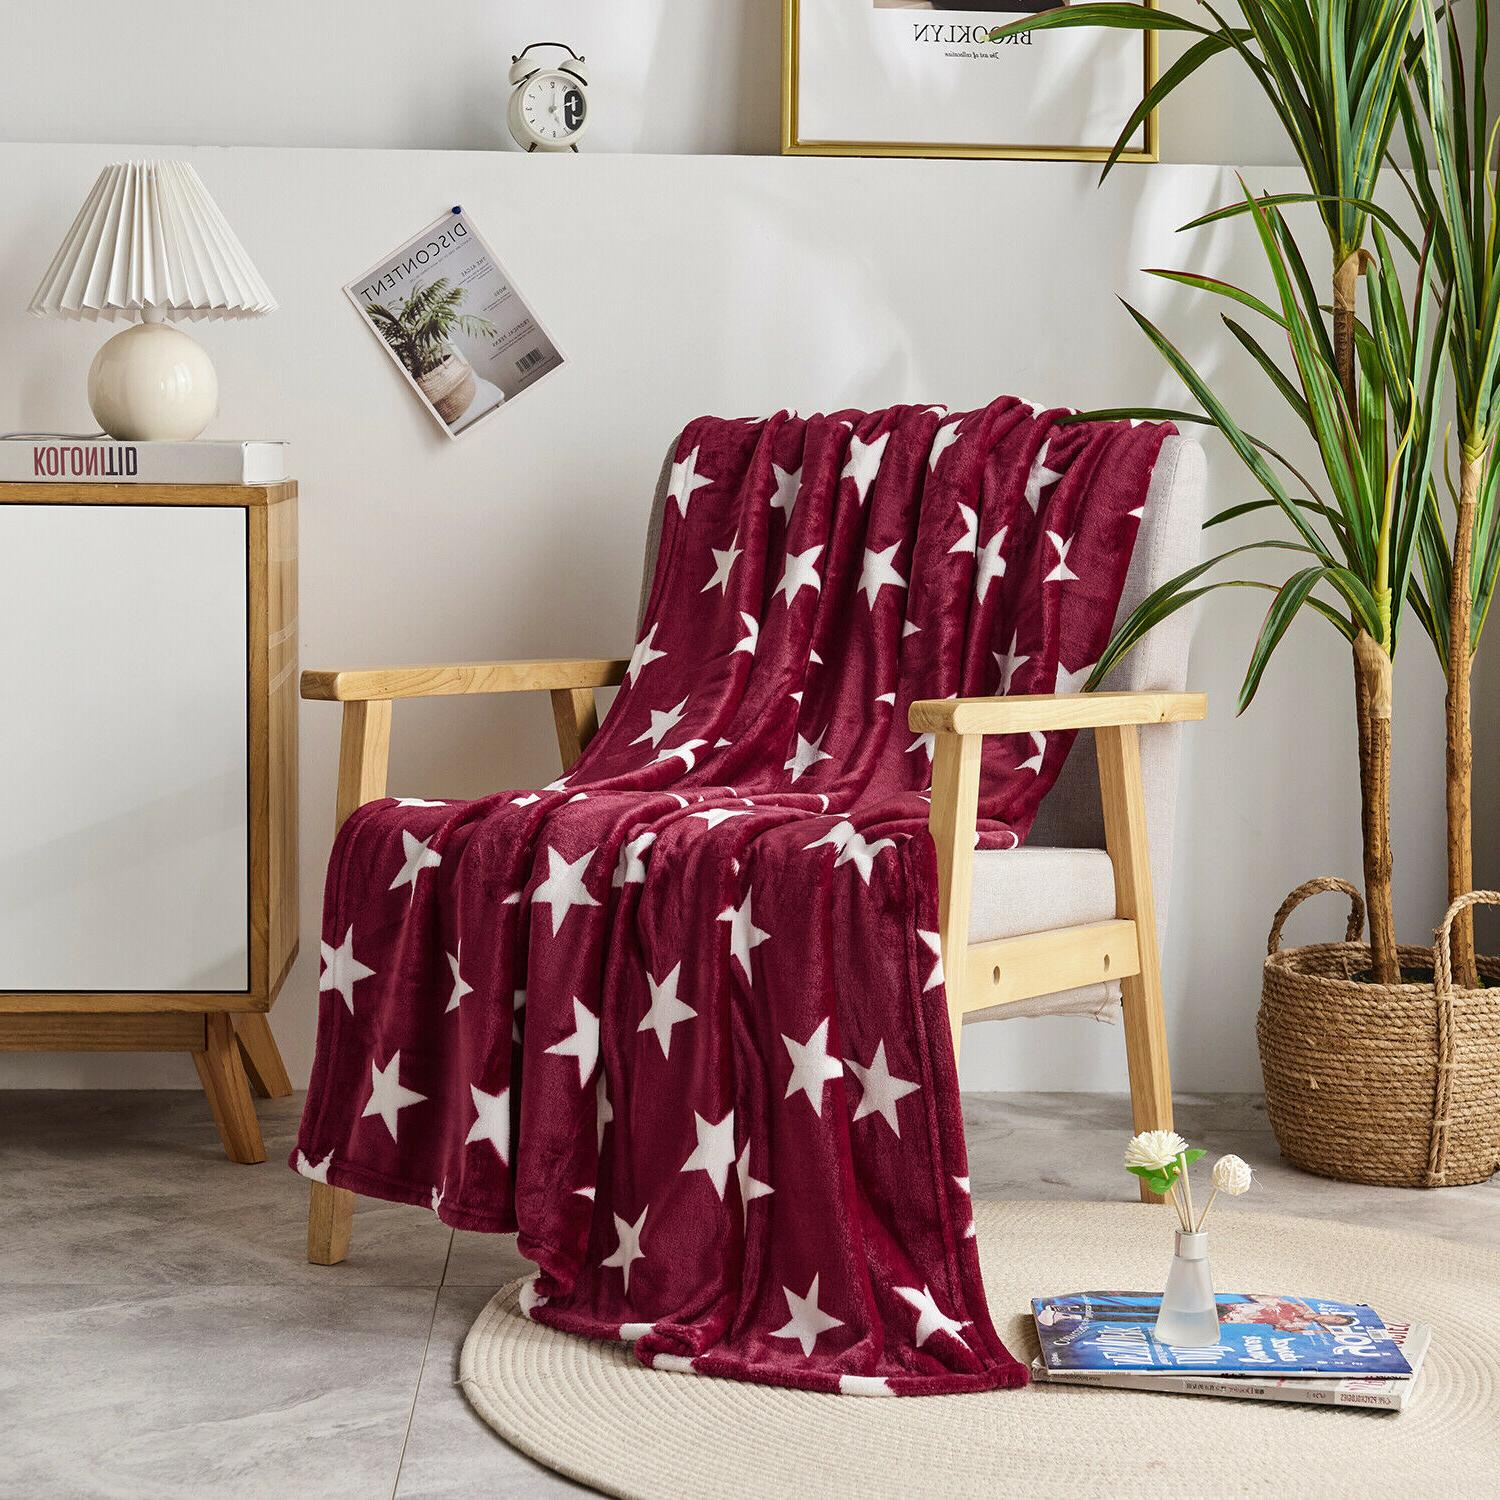 Super Soft Blanket Bed Chair